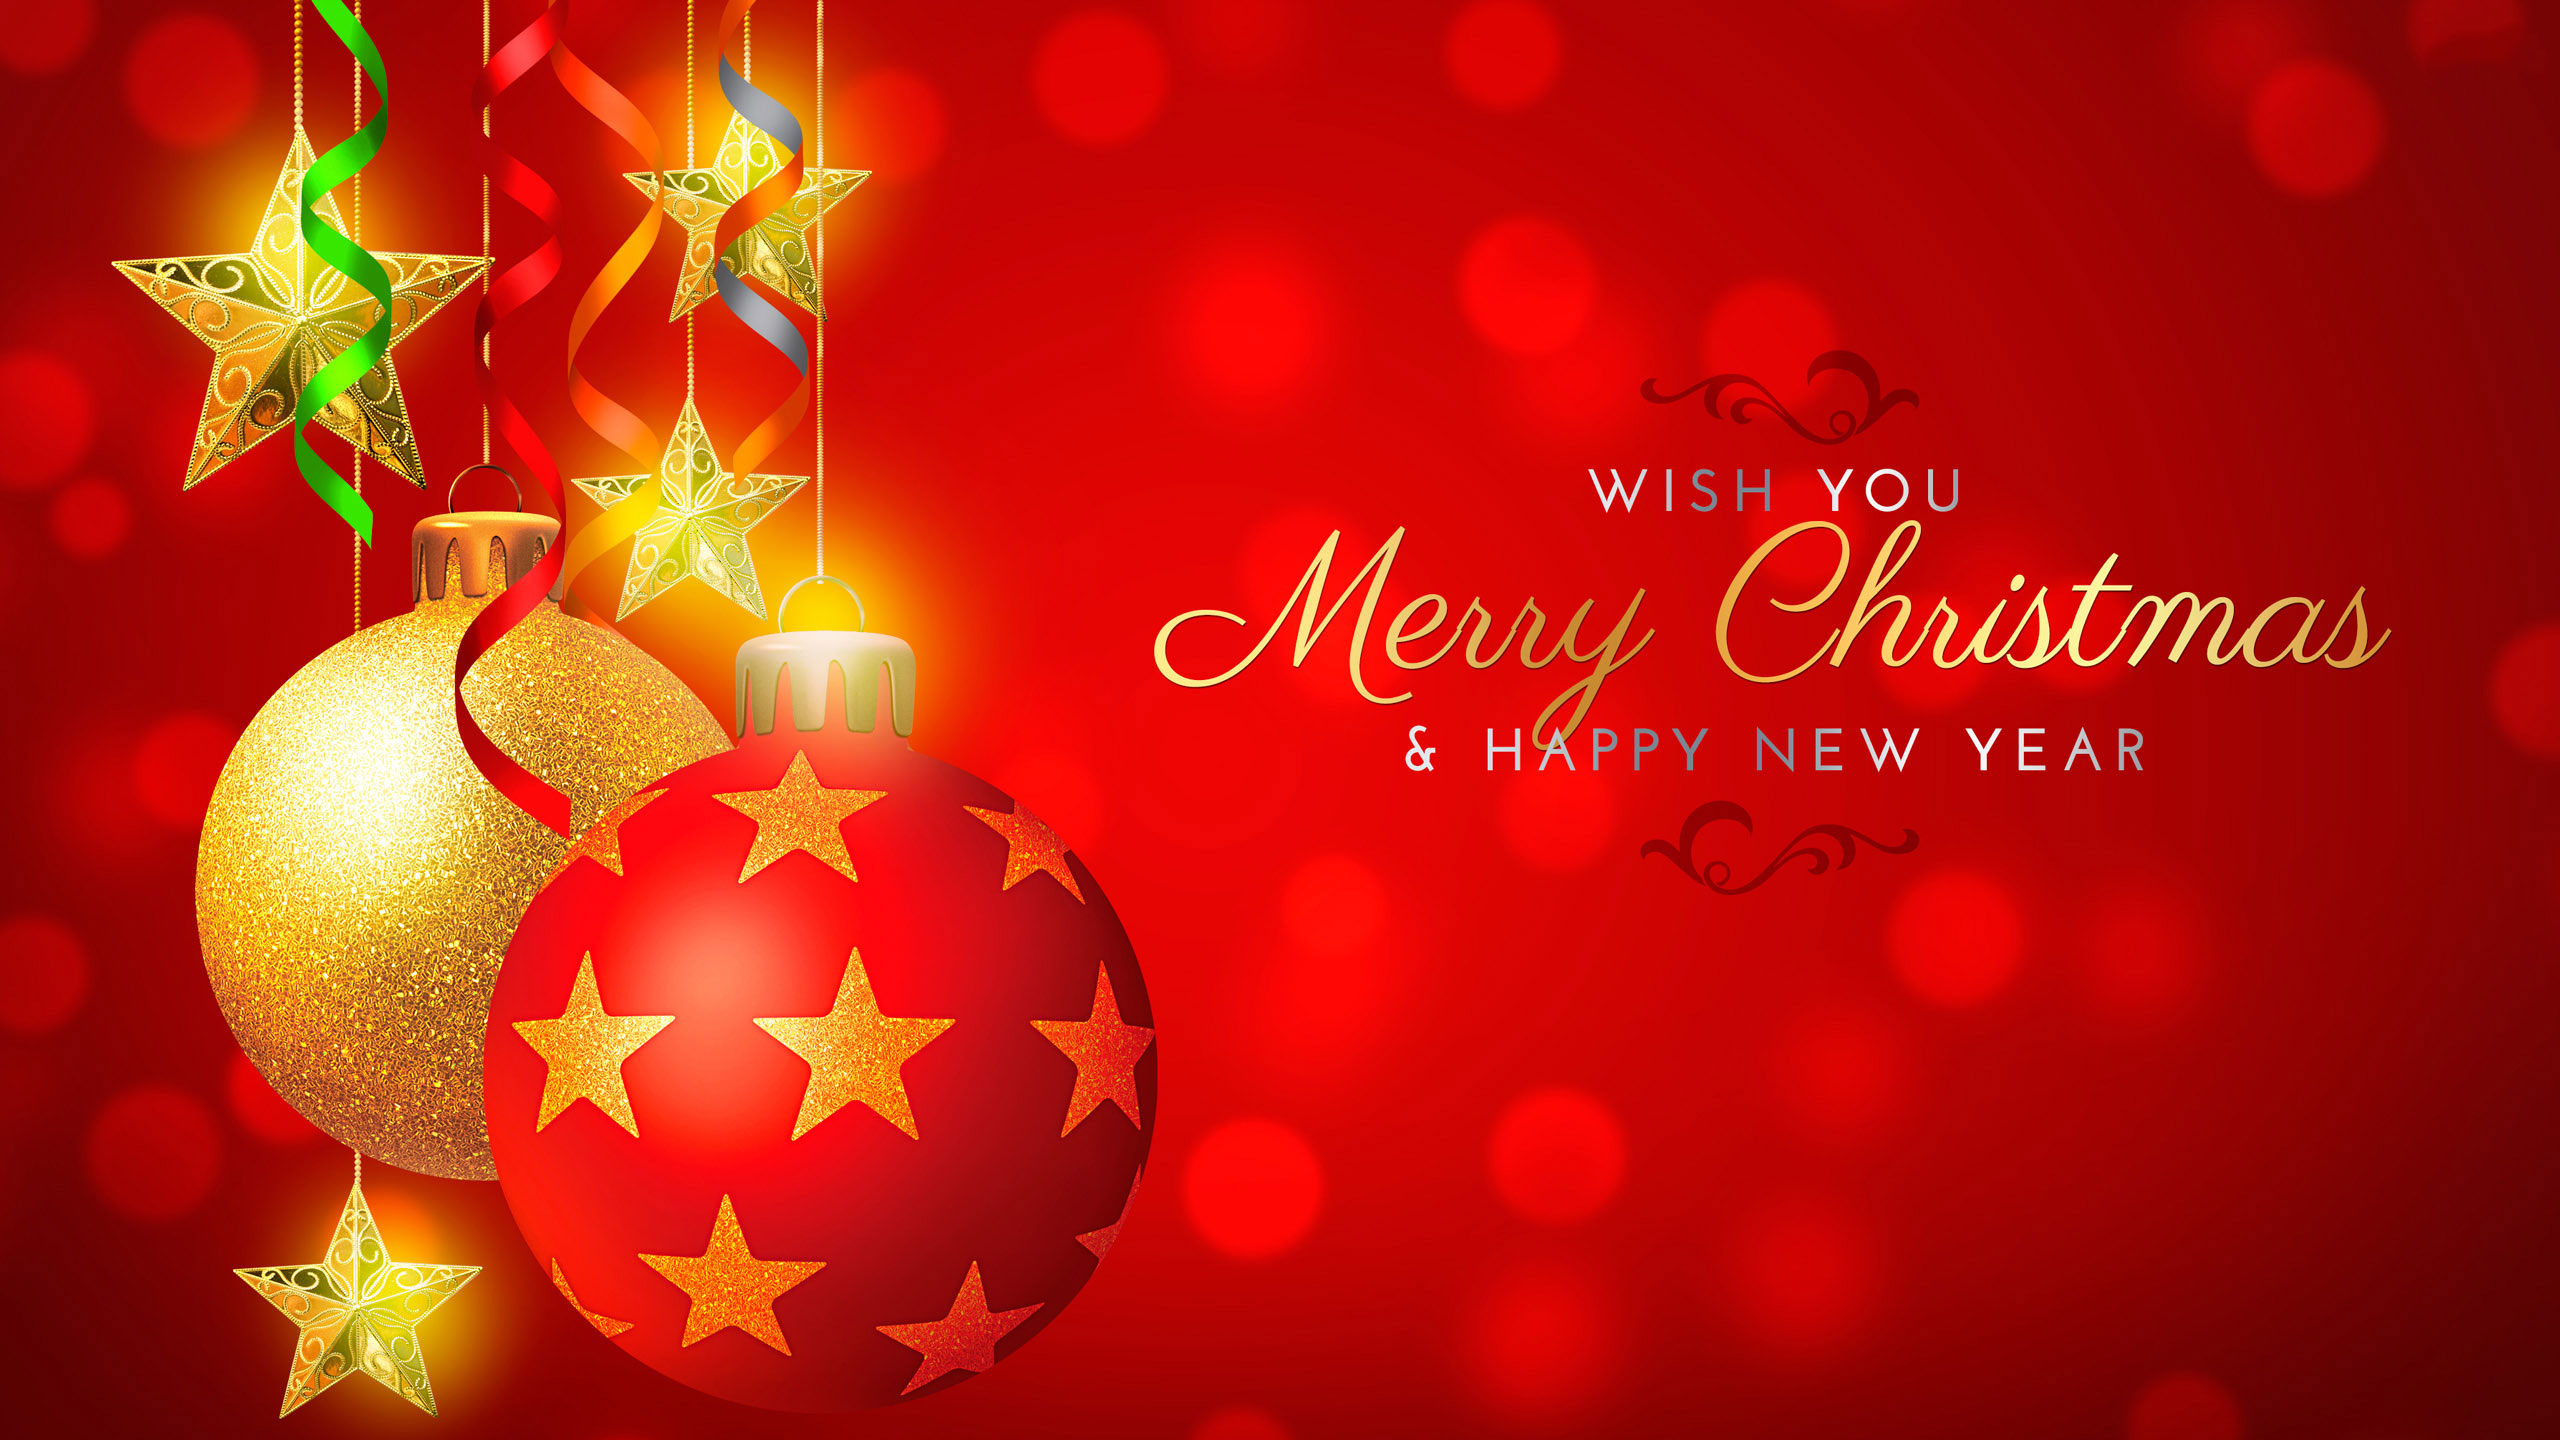 Wish You Merry Christmas And Happy New Year Wallpaper - Happy Vietnamese New Year 2018 , HD Wallpaper & Backgrounds